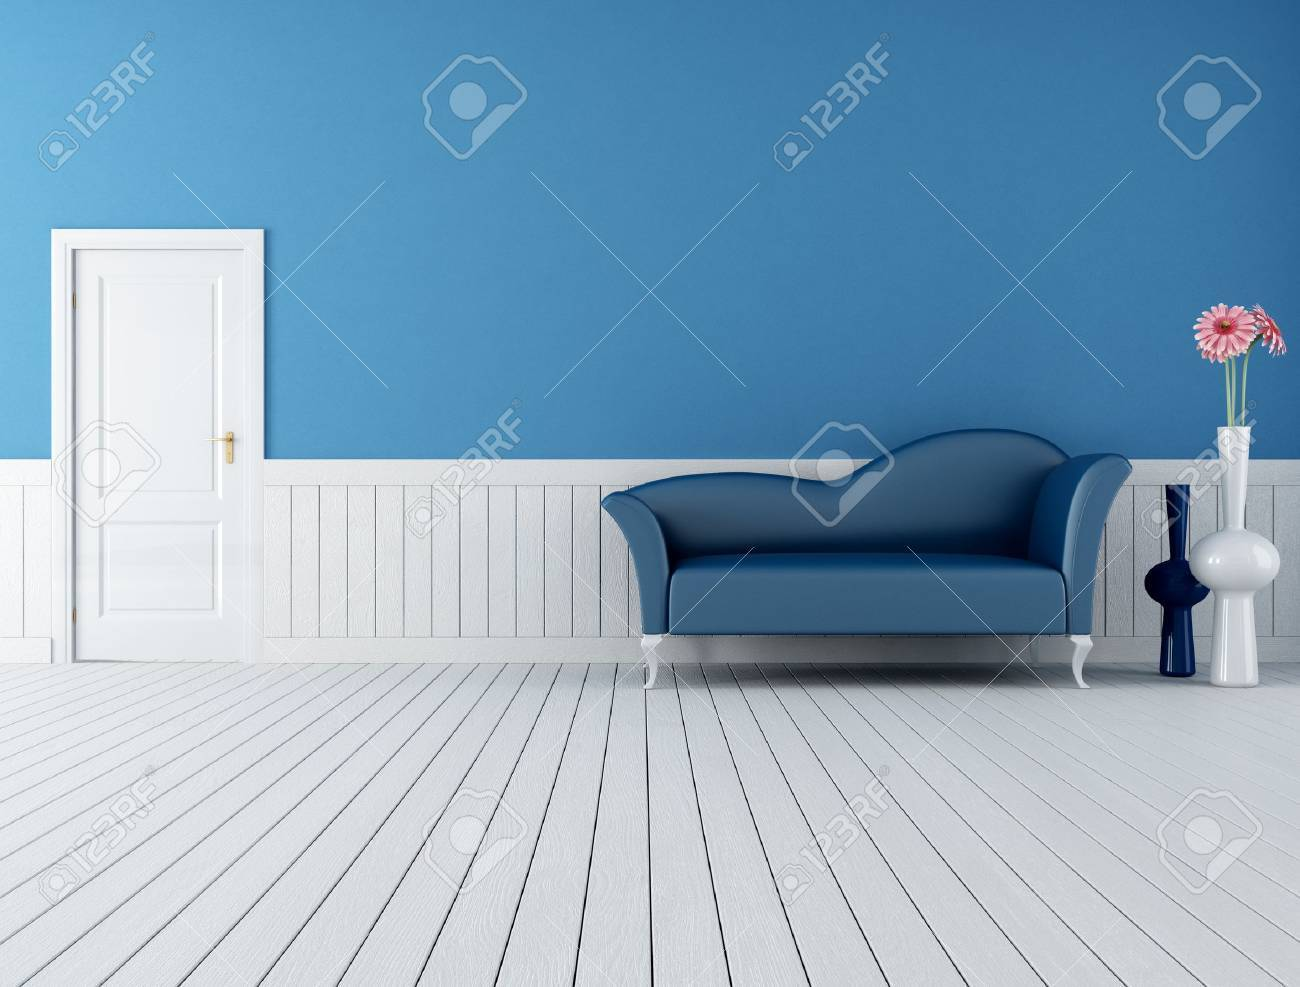 Modern blue sofa in a retro interior with plank wood floor